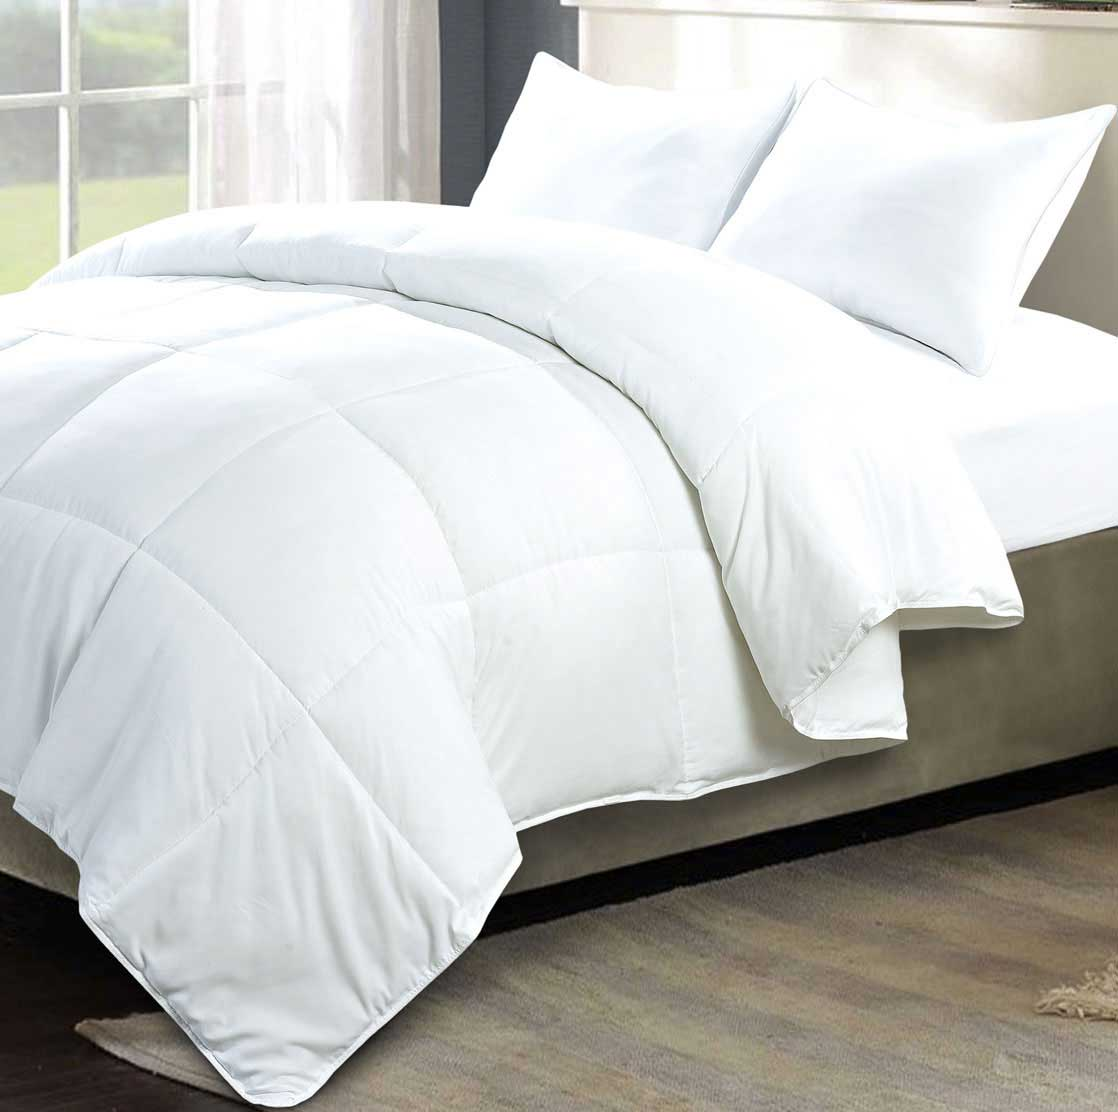 Super Soft, Super Warm, and Super Affordable 3 Piece Comforter Set for $35